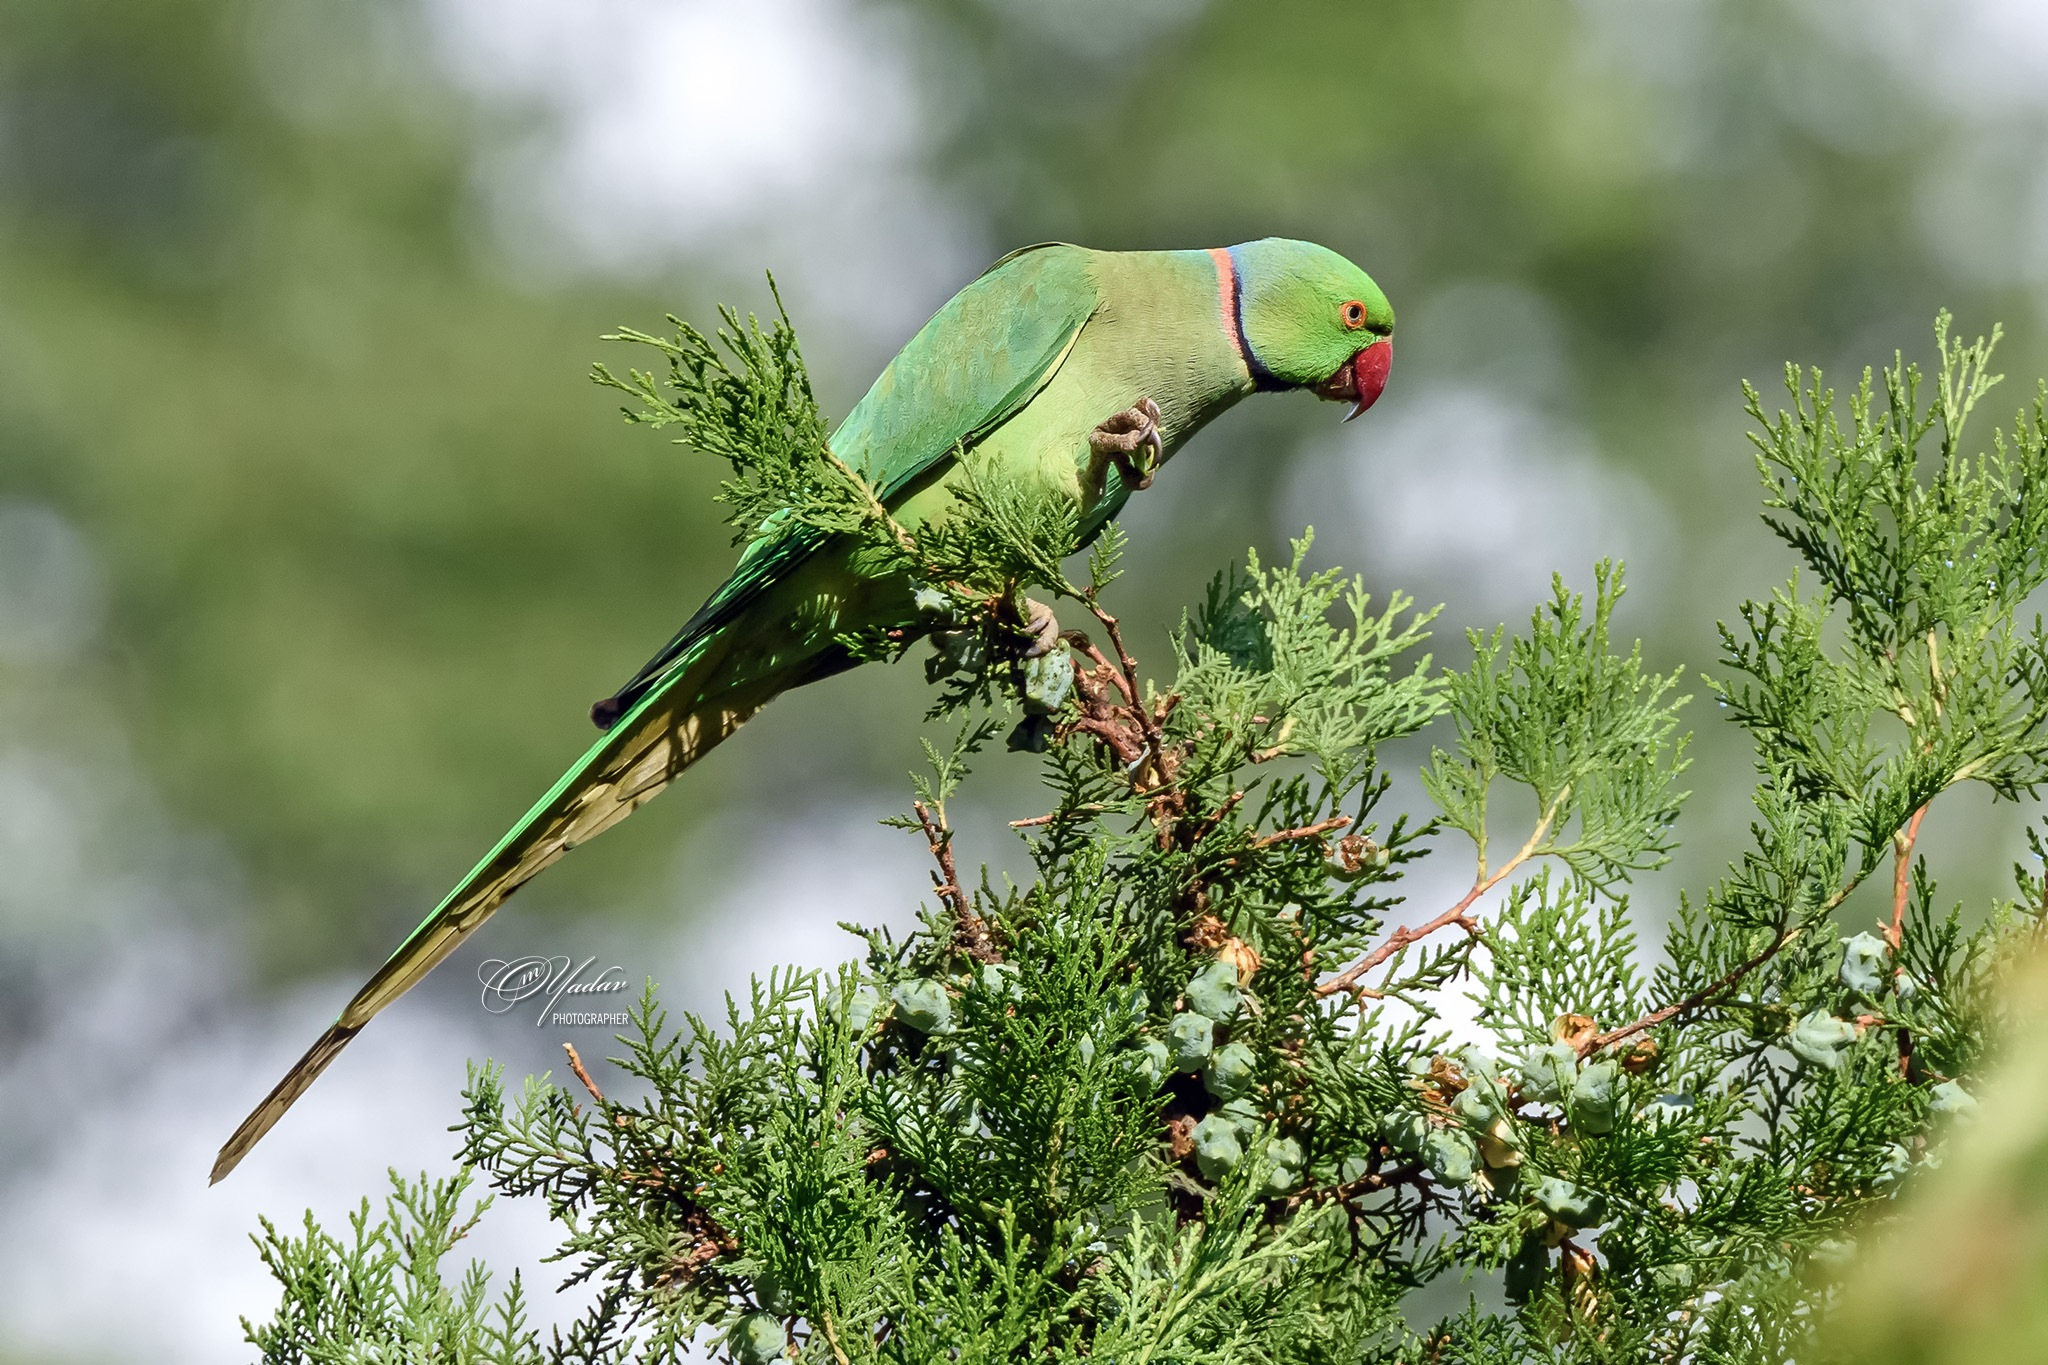 Rose-ringed Parakeet (male) by Om Yadav